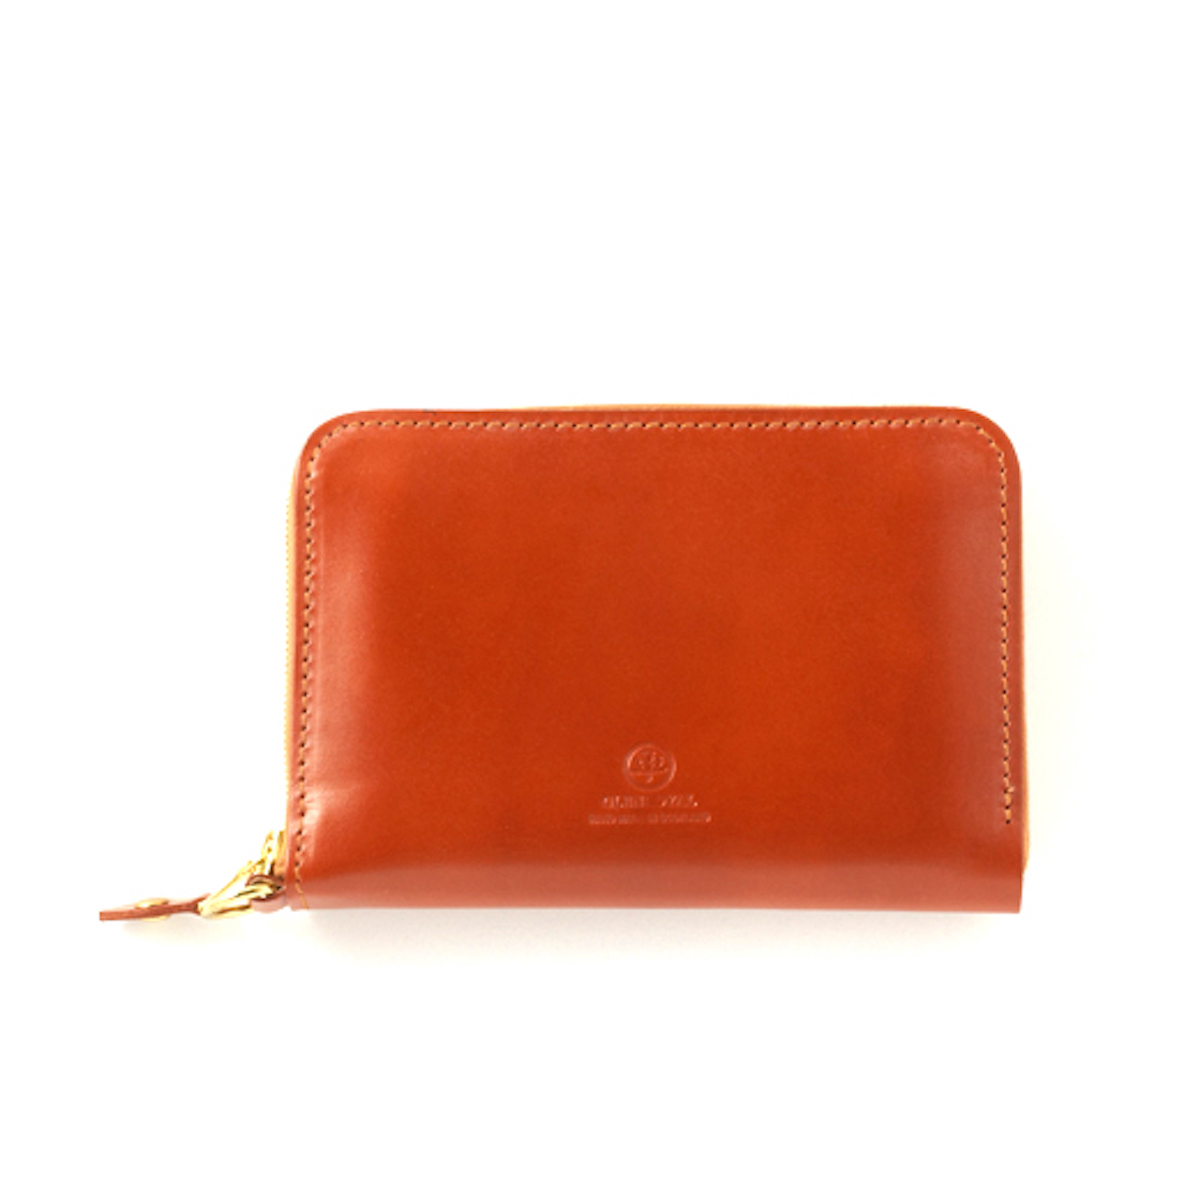 GLEN ROYAL / WALLET WITH DIVIDERS -OXFORD TAN